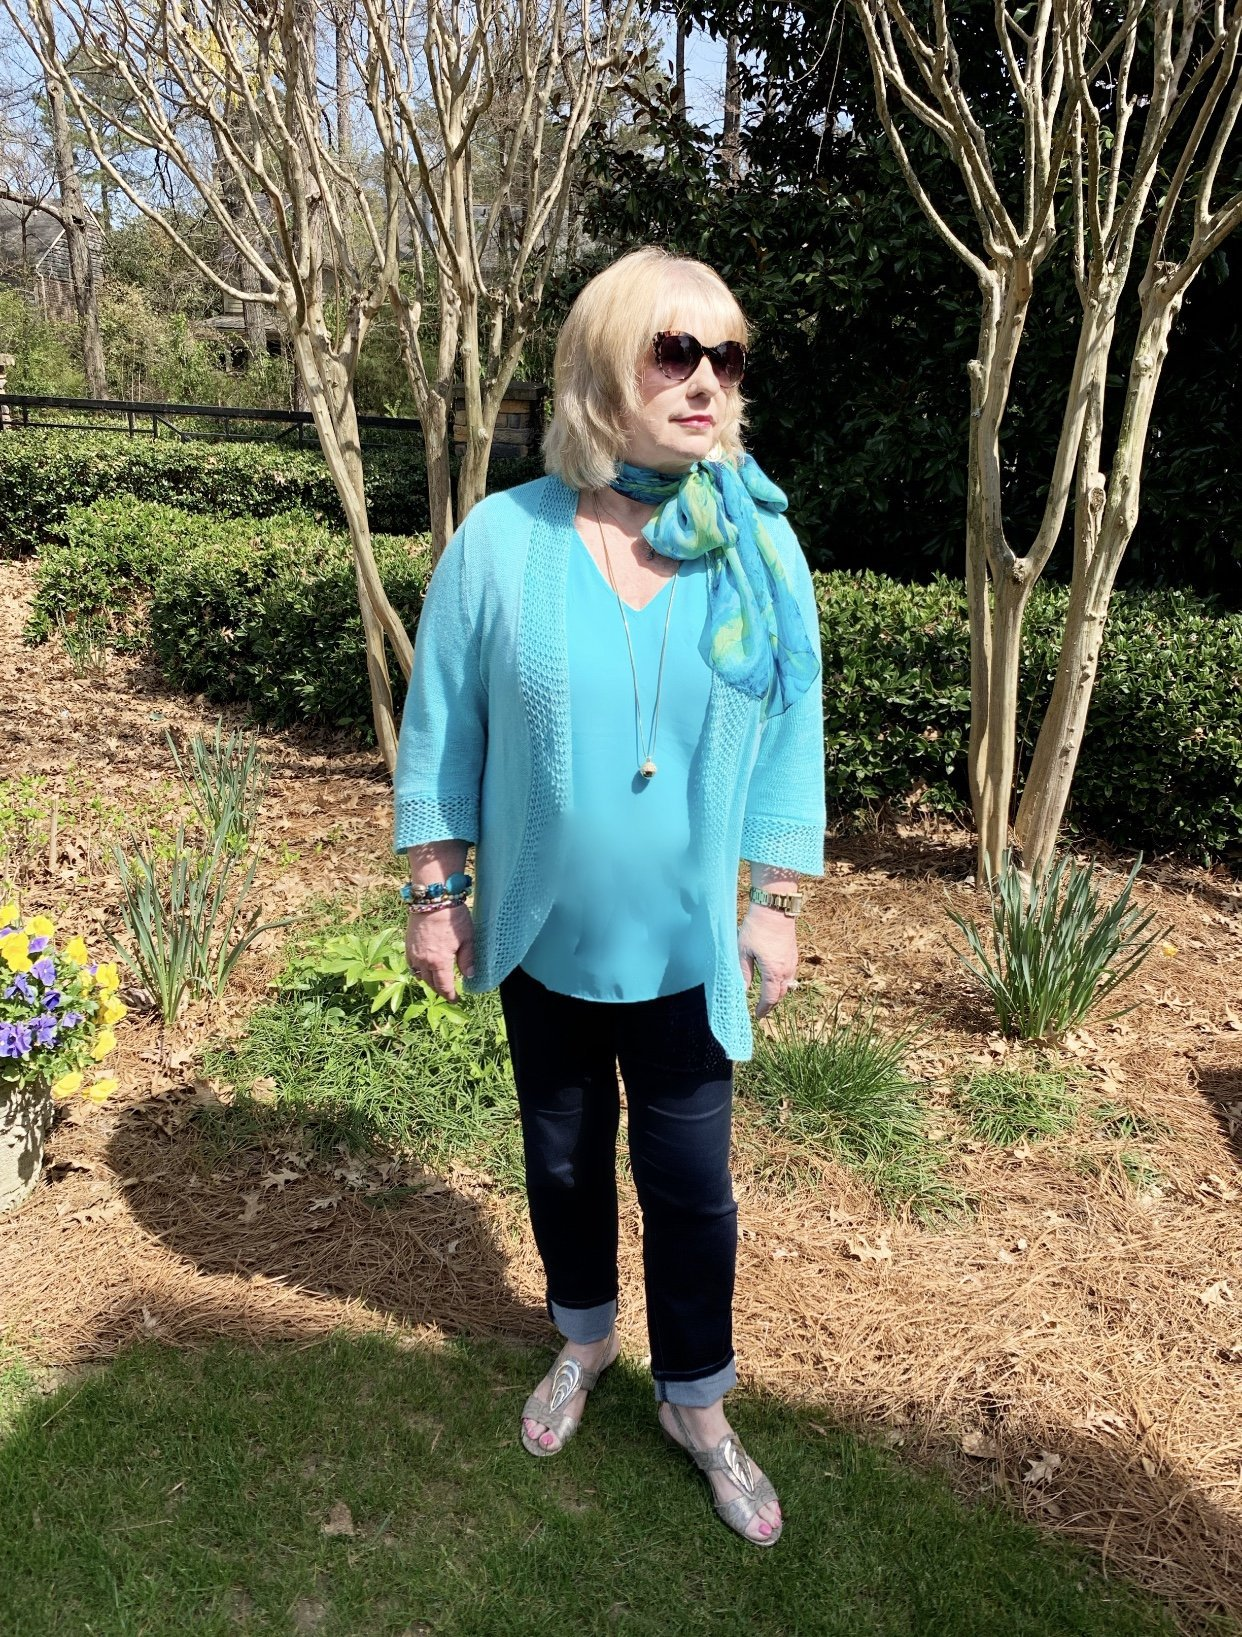 Style Story Interview Classy Colorful Confidence @StyleShennanigans Shannon Holmes Fashion Over 50 60 Confident Chic Aqua Outfit Ascot Bow Tied Scarf Story Behind The Cloth